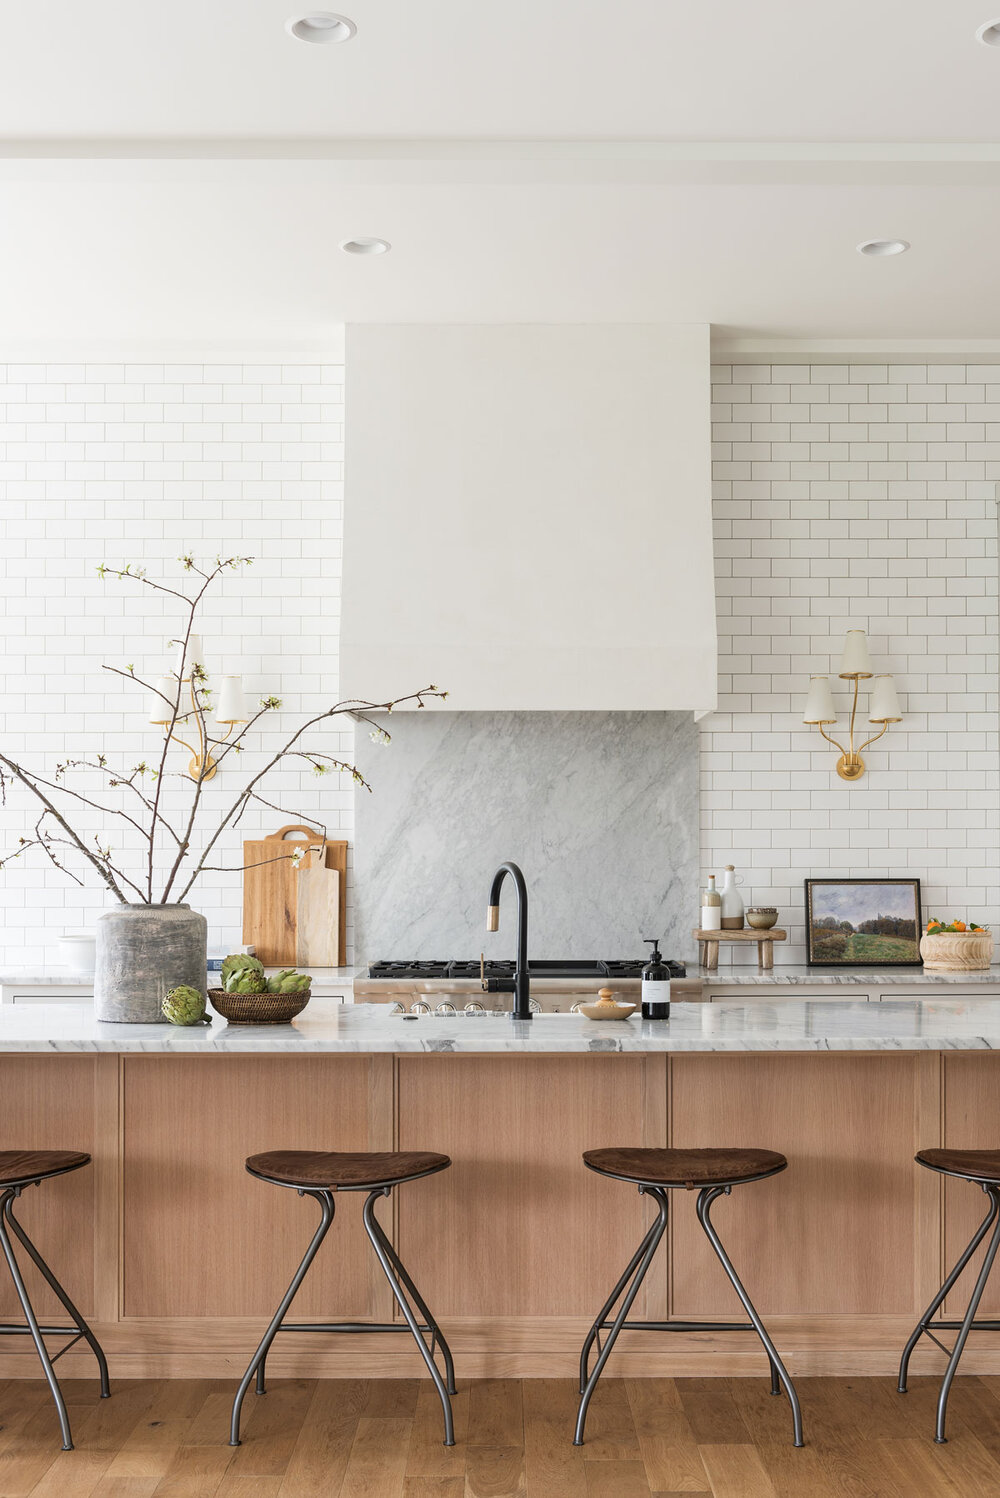 How To Pick The Right Barstools & Counter Stools